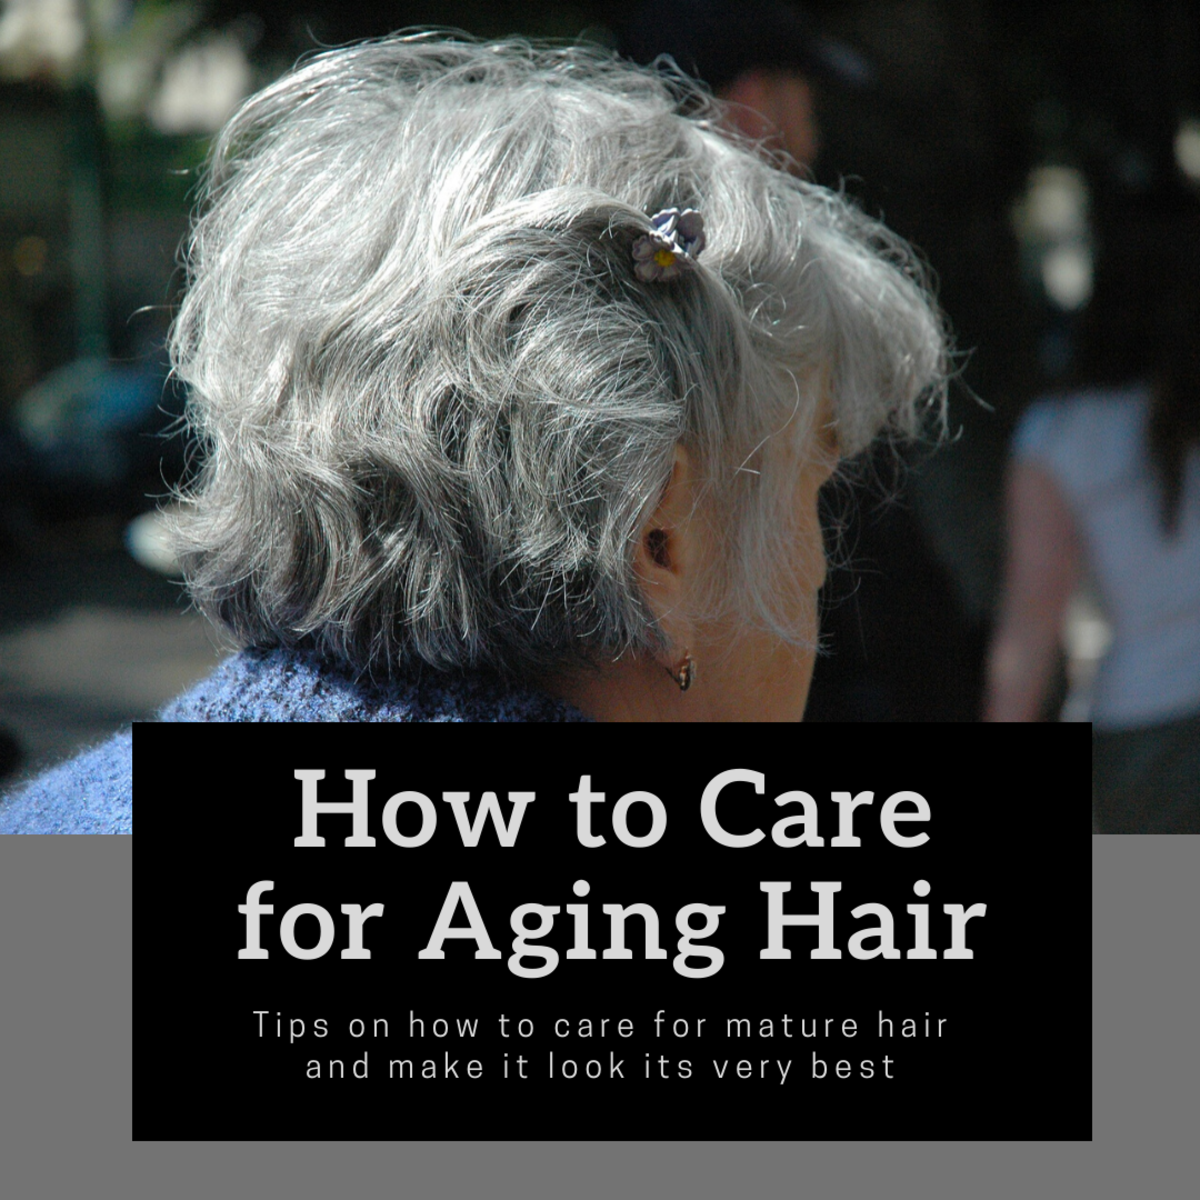 How to Care for Aging Hair